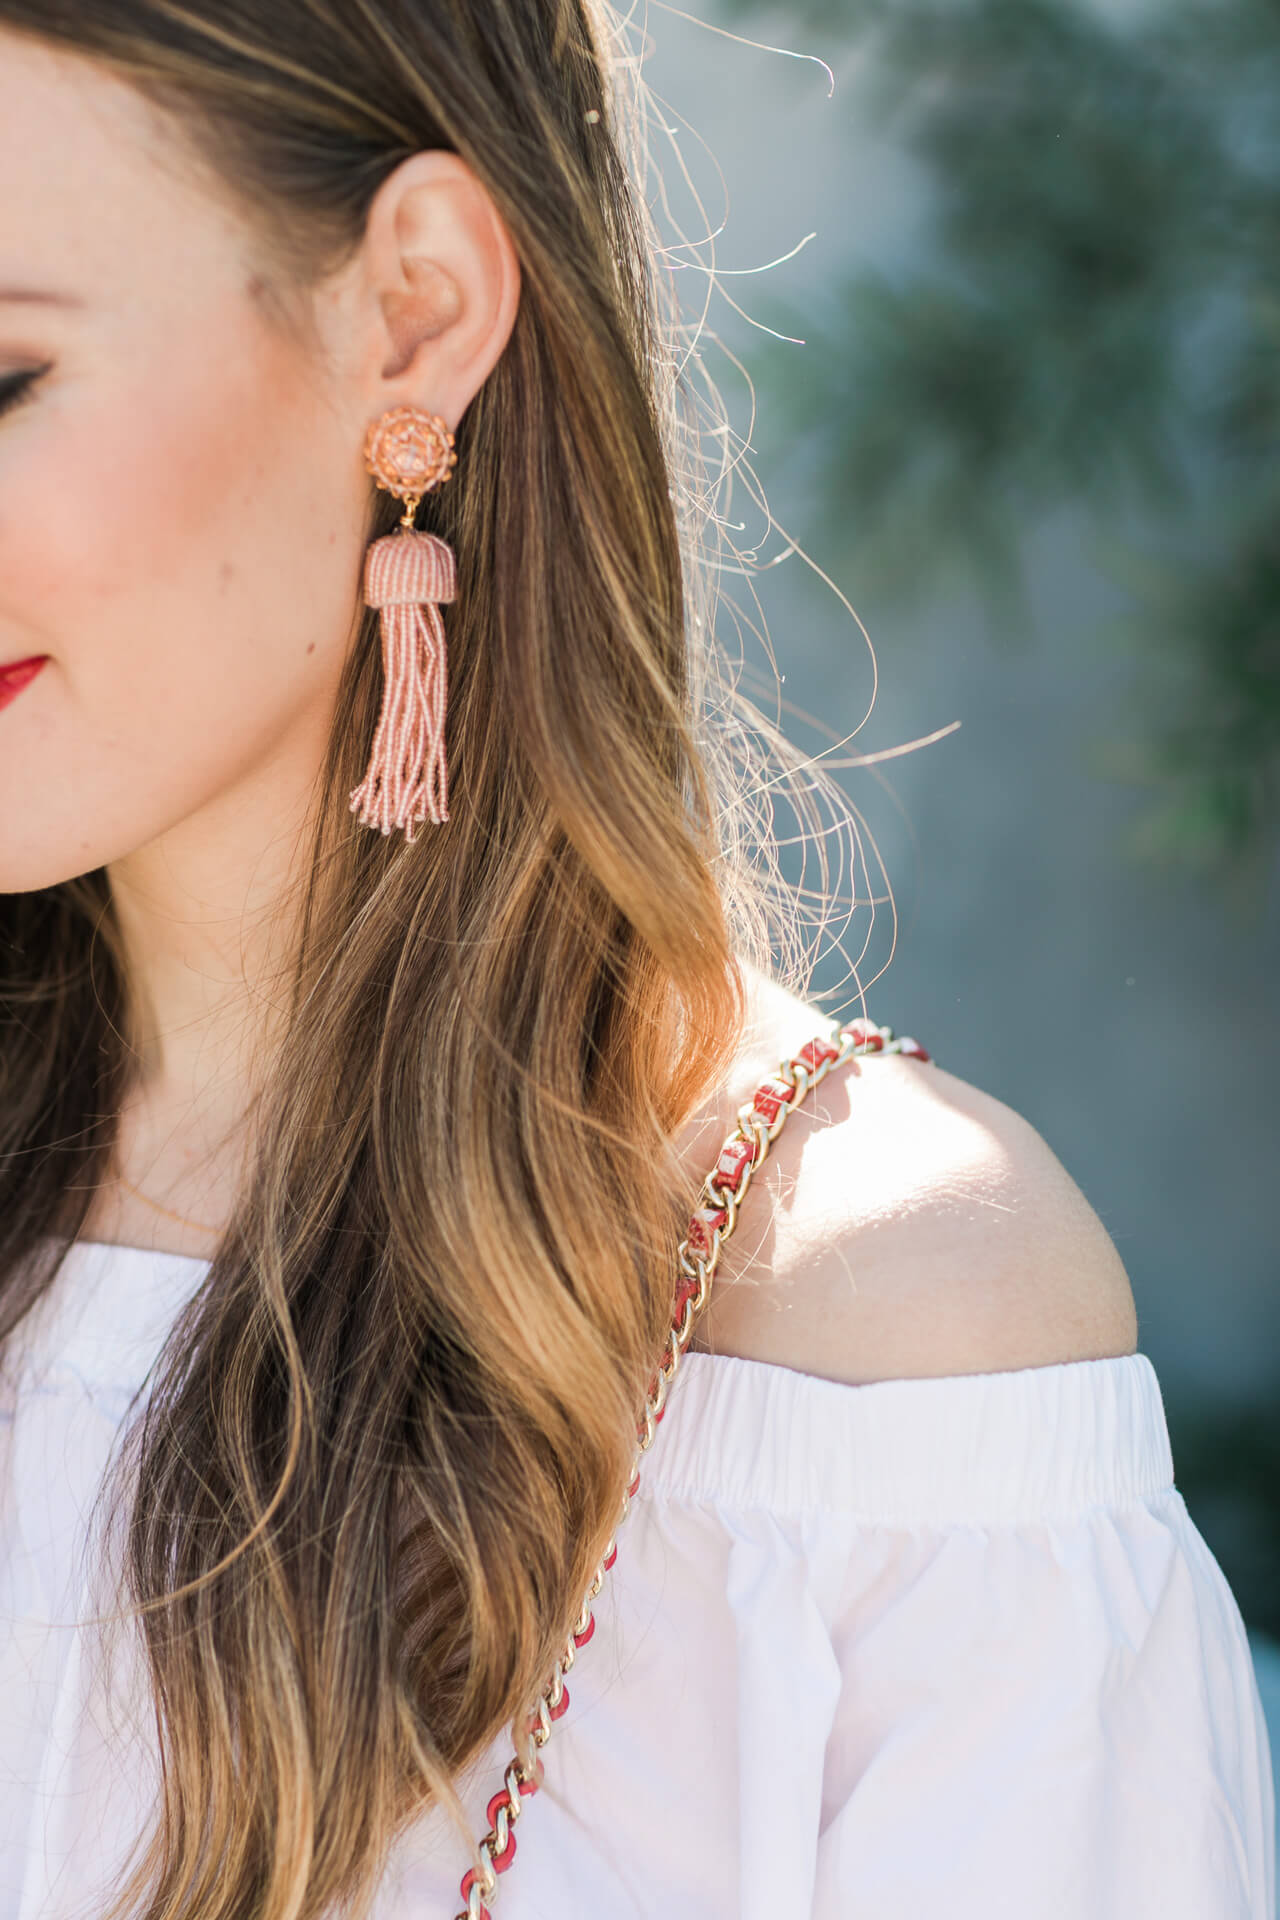 pink beaded tassel earrings look so cute with this off-the-shoulder top